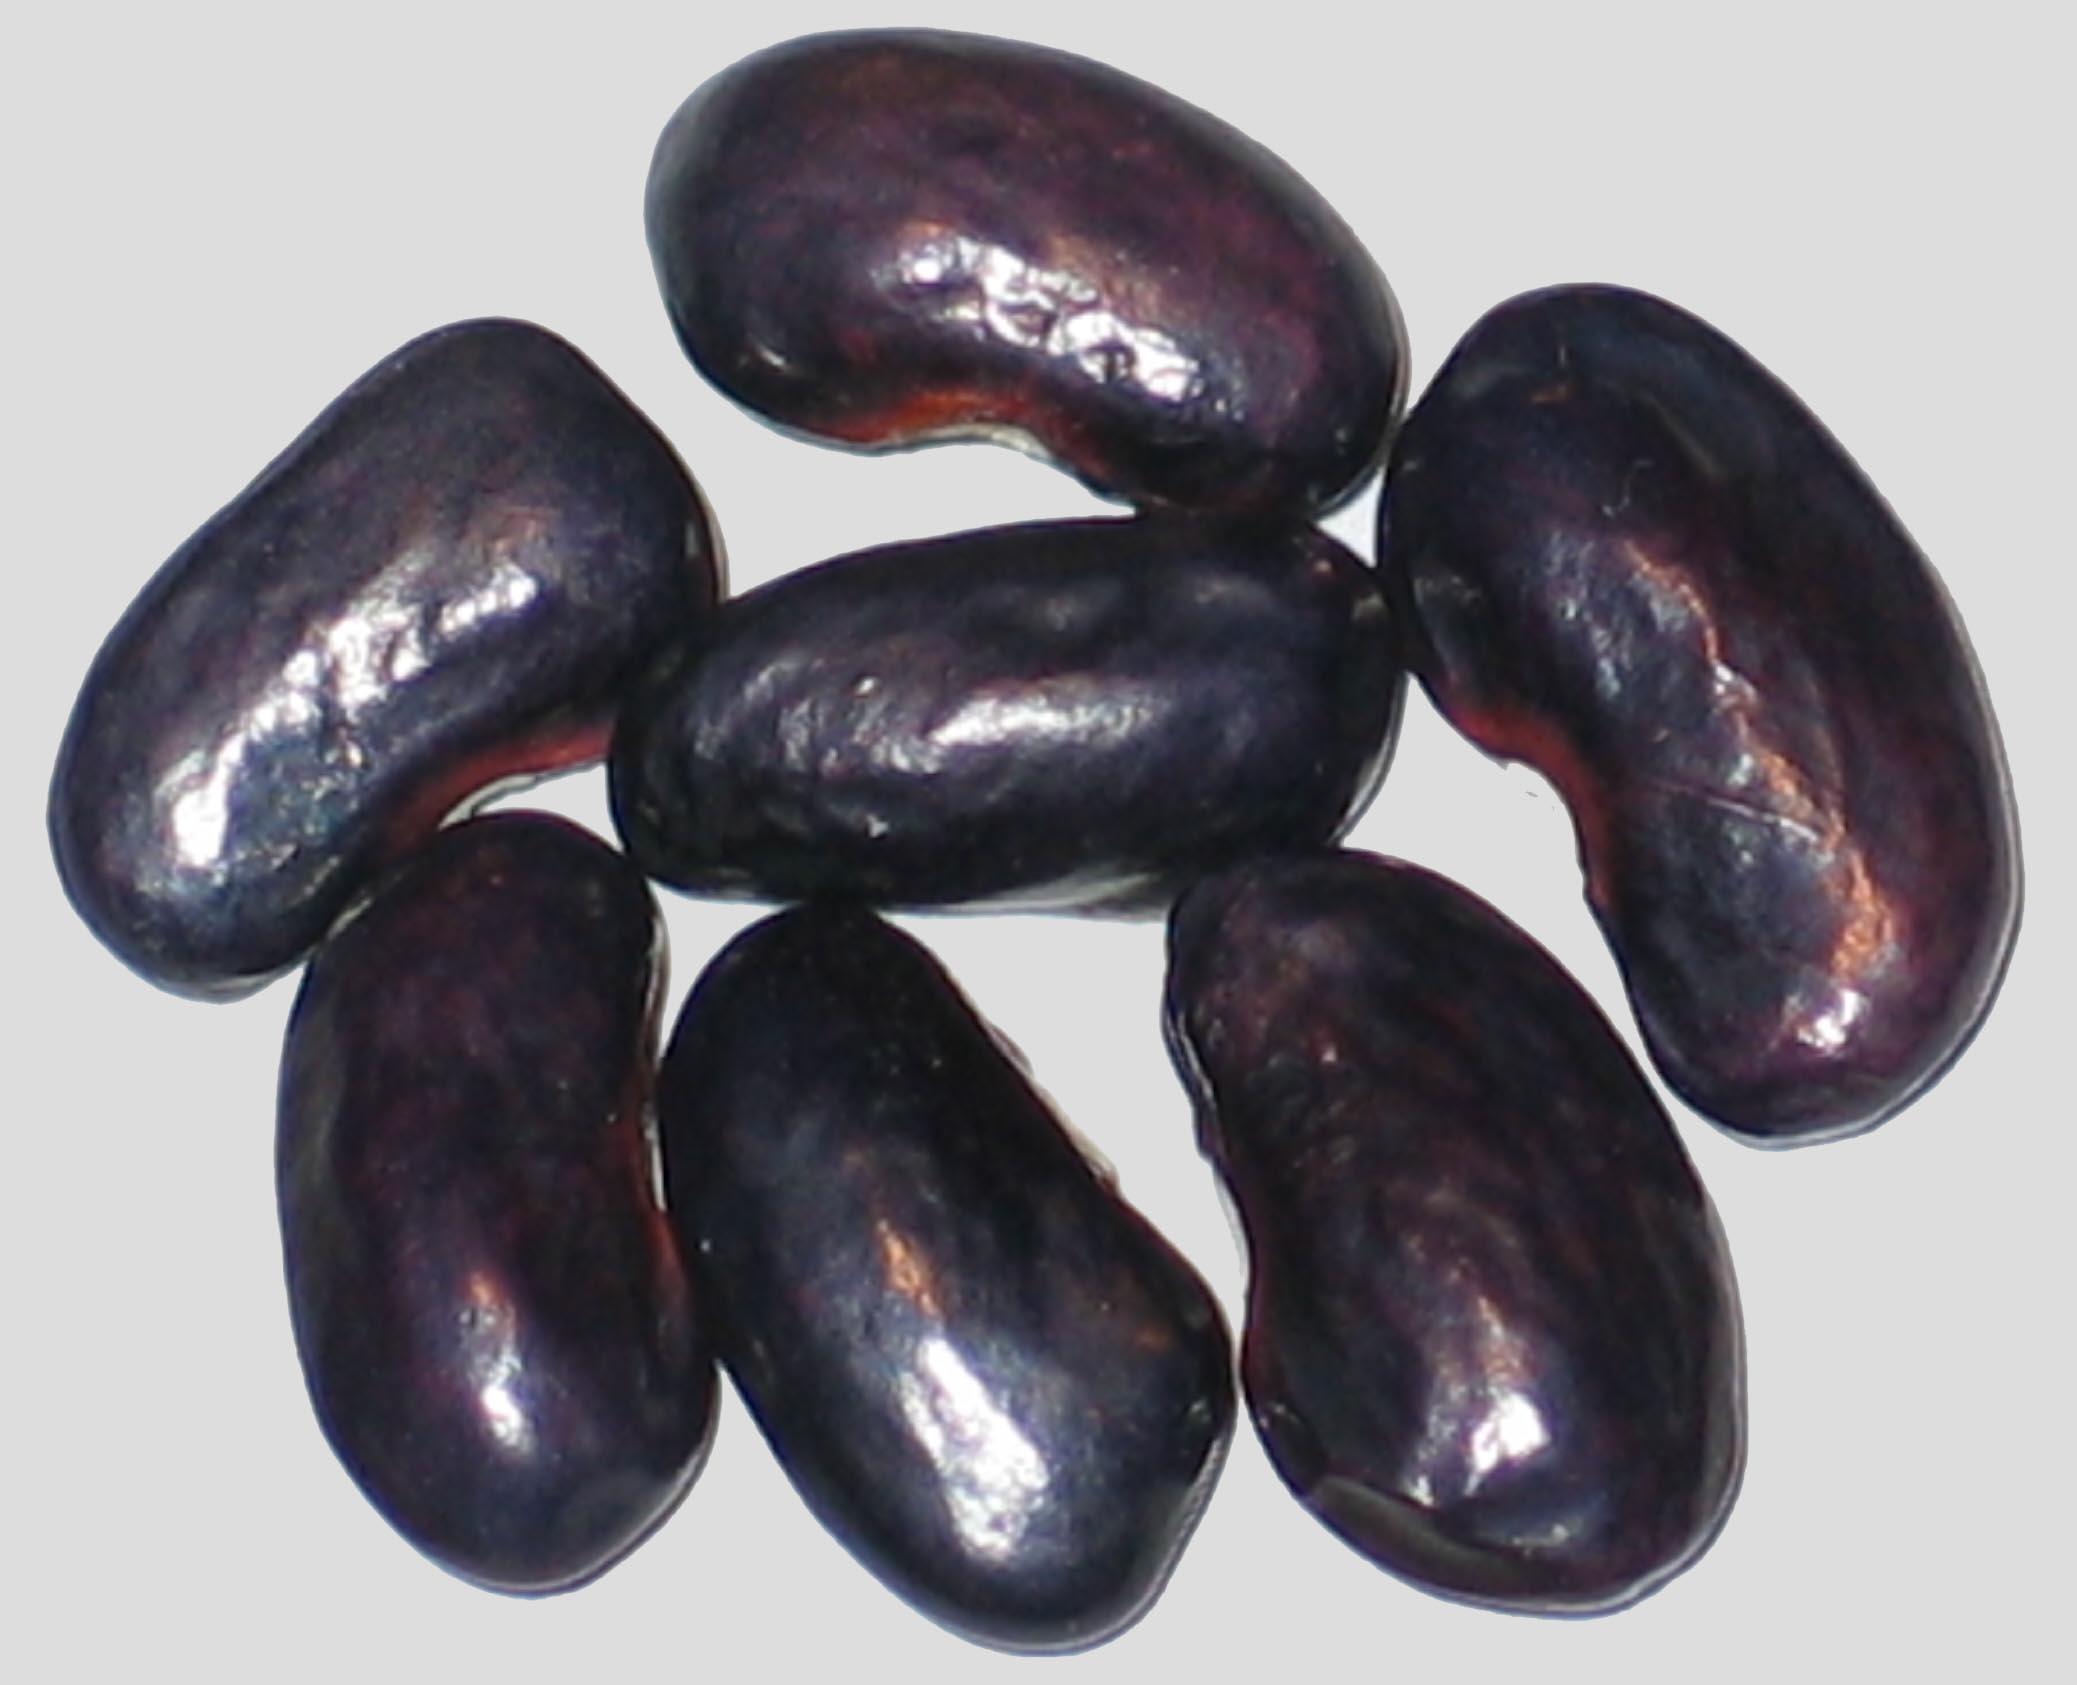 image of Highlight beans